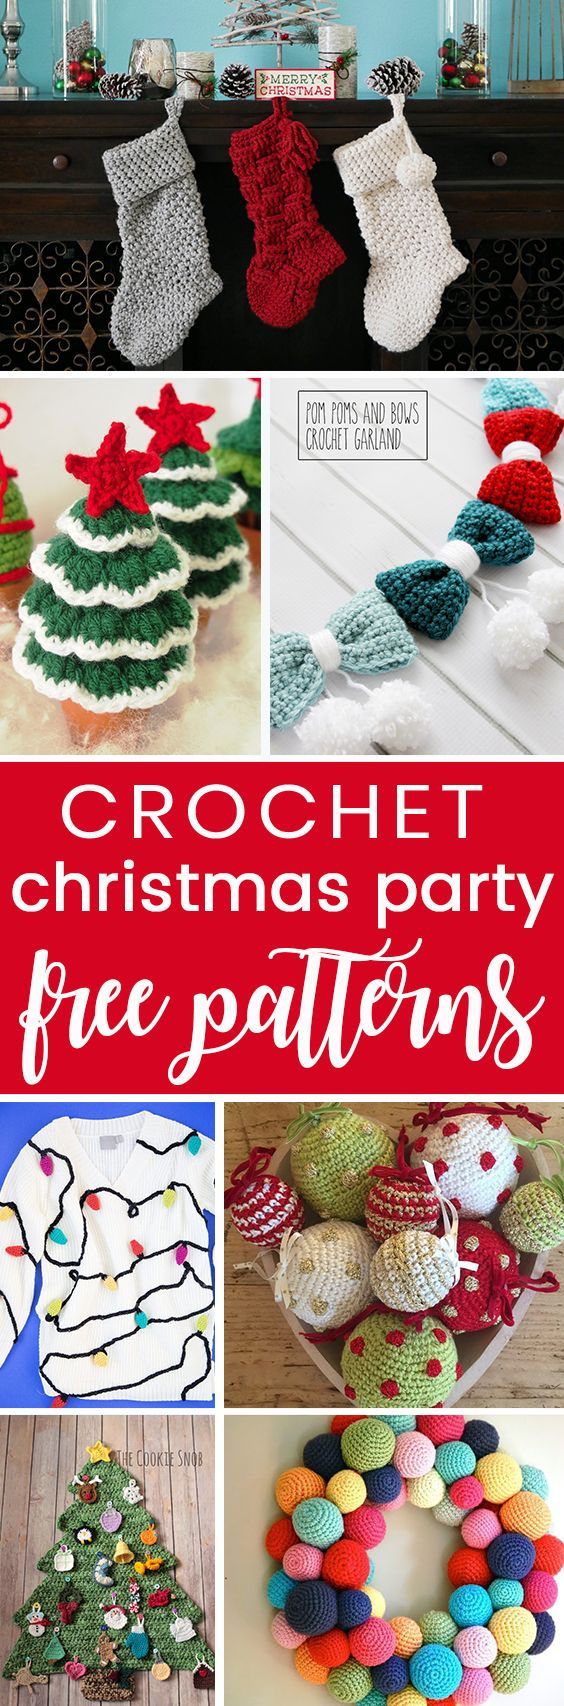 Crochet these easy free christmas holiday patterns for your next party! Home decor, wearables, and the perfect crochet tacky christmas sweater!